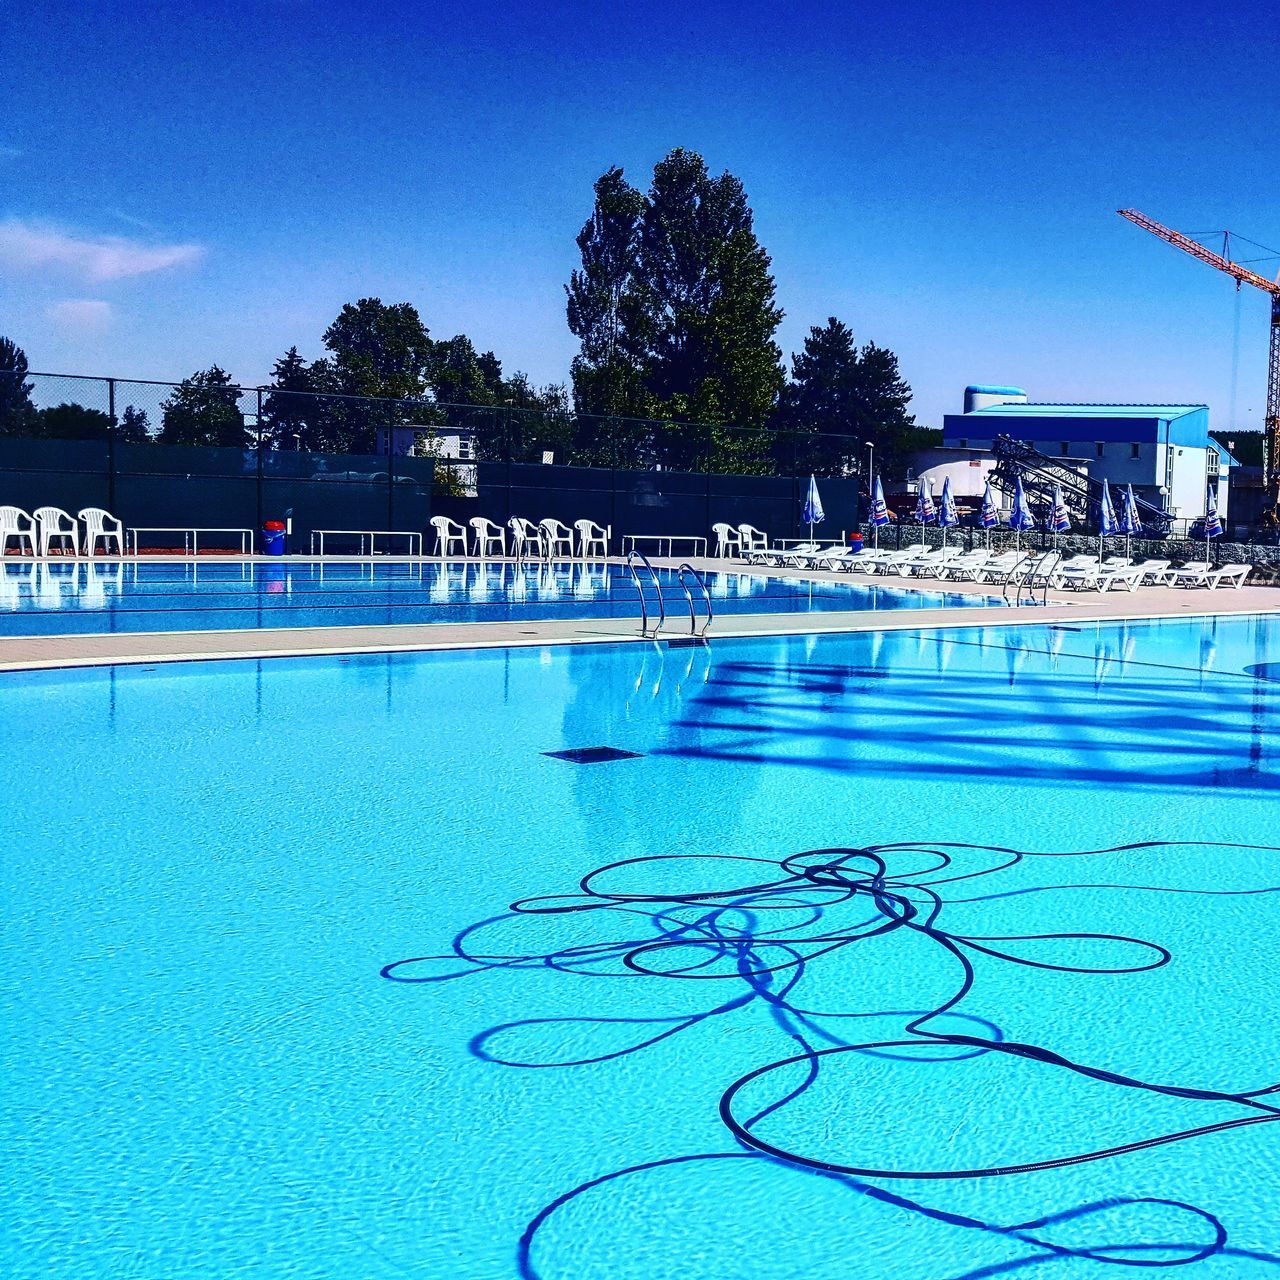 swimming pool, tree, blue, water, outdoors, day, sky, no people, architecture, nature